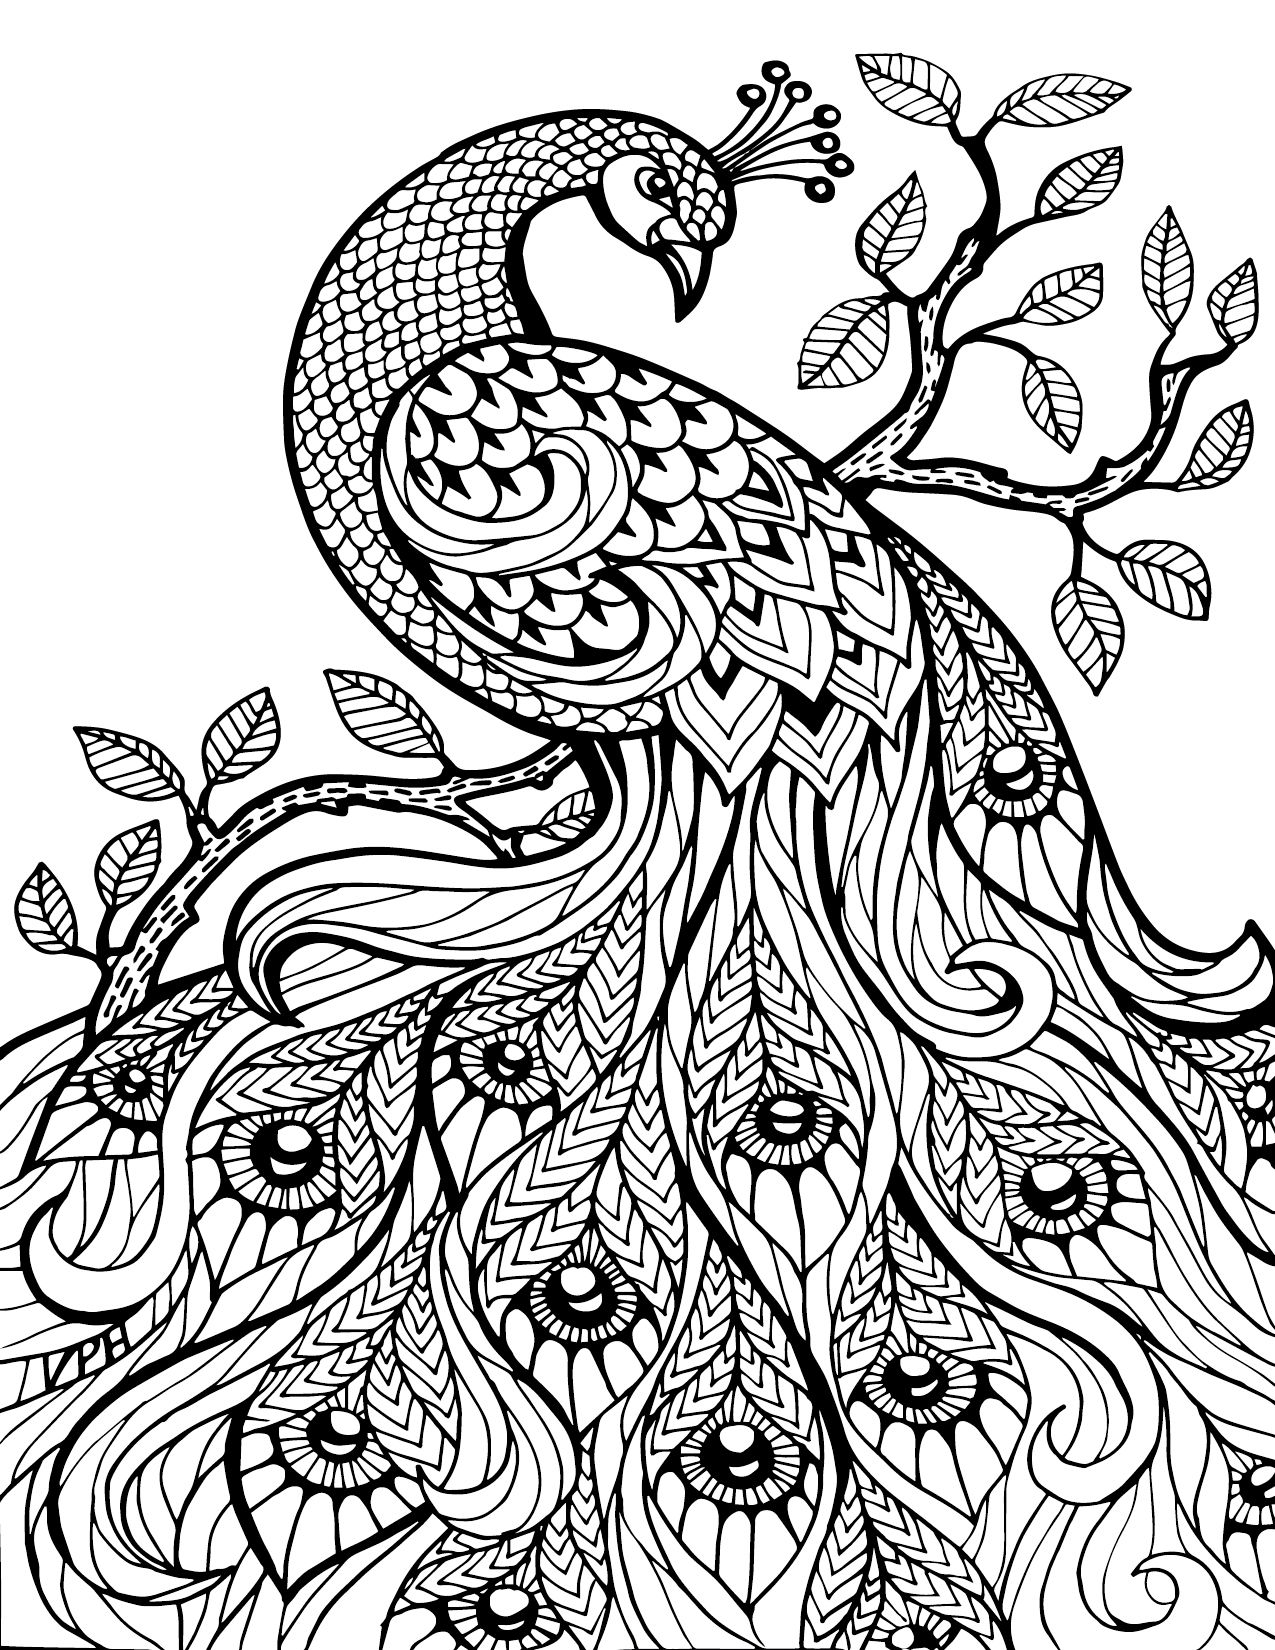 Free Printable Coloring Pages For Adults ly Image Art